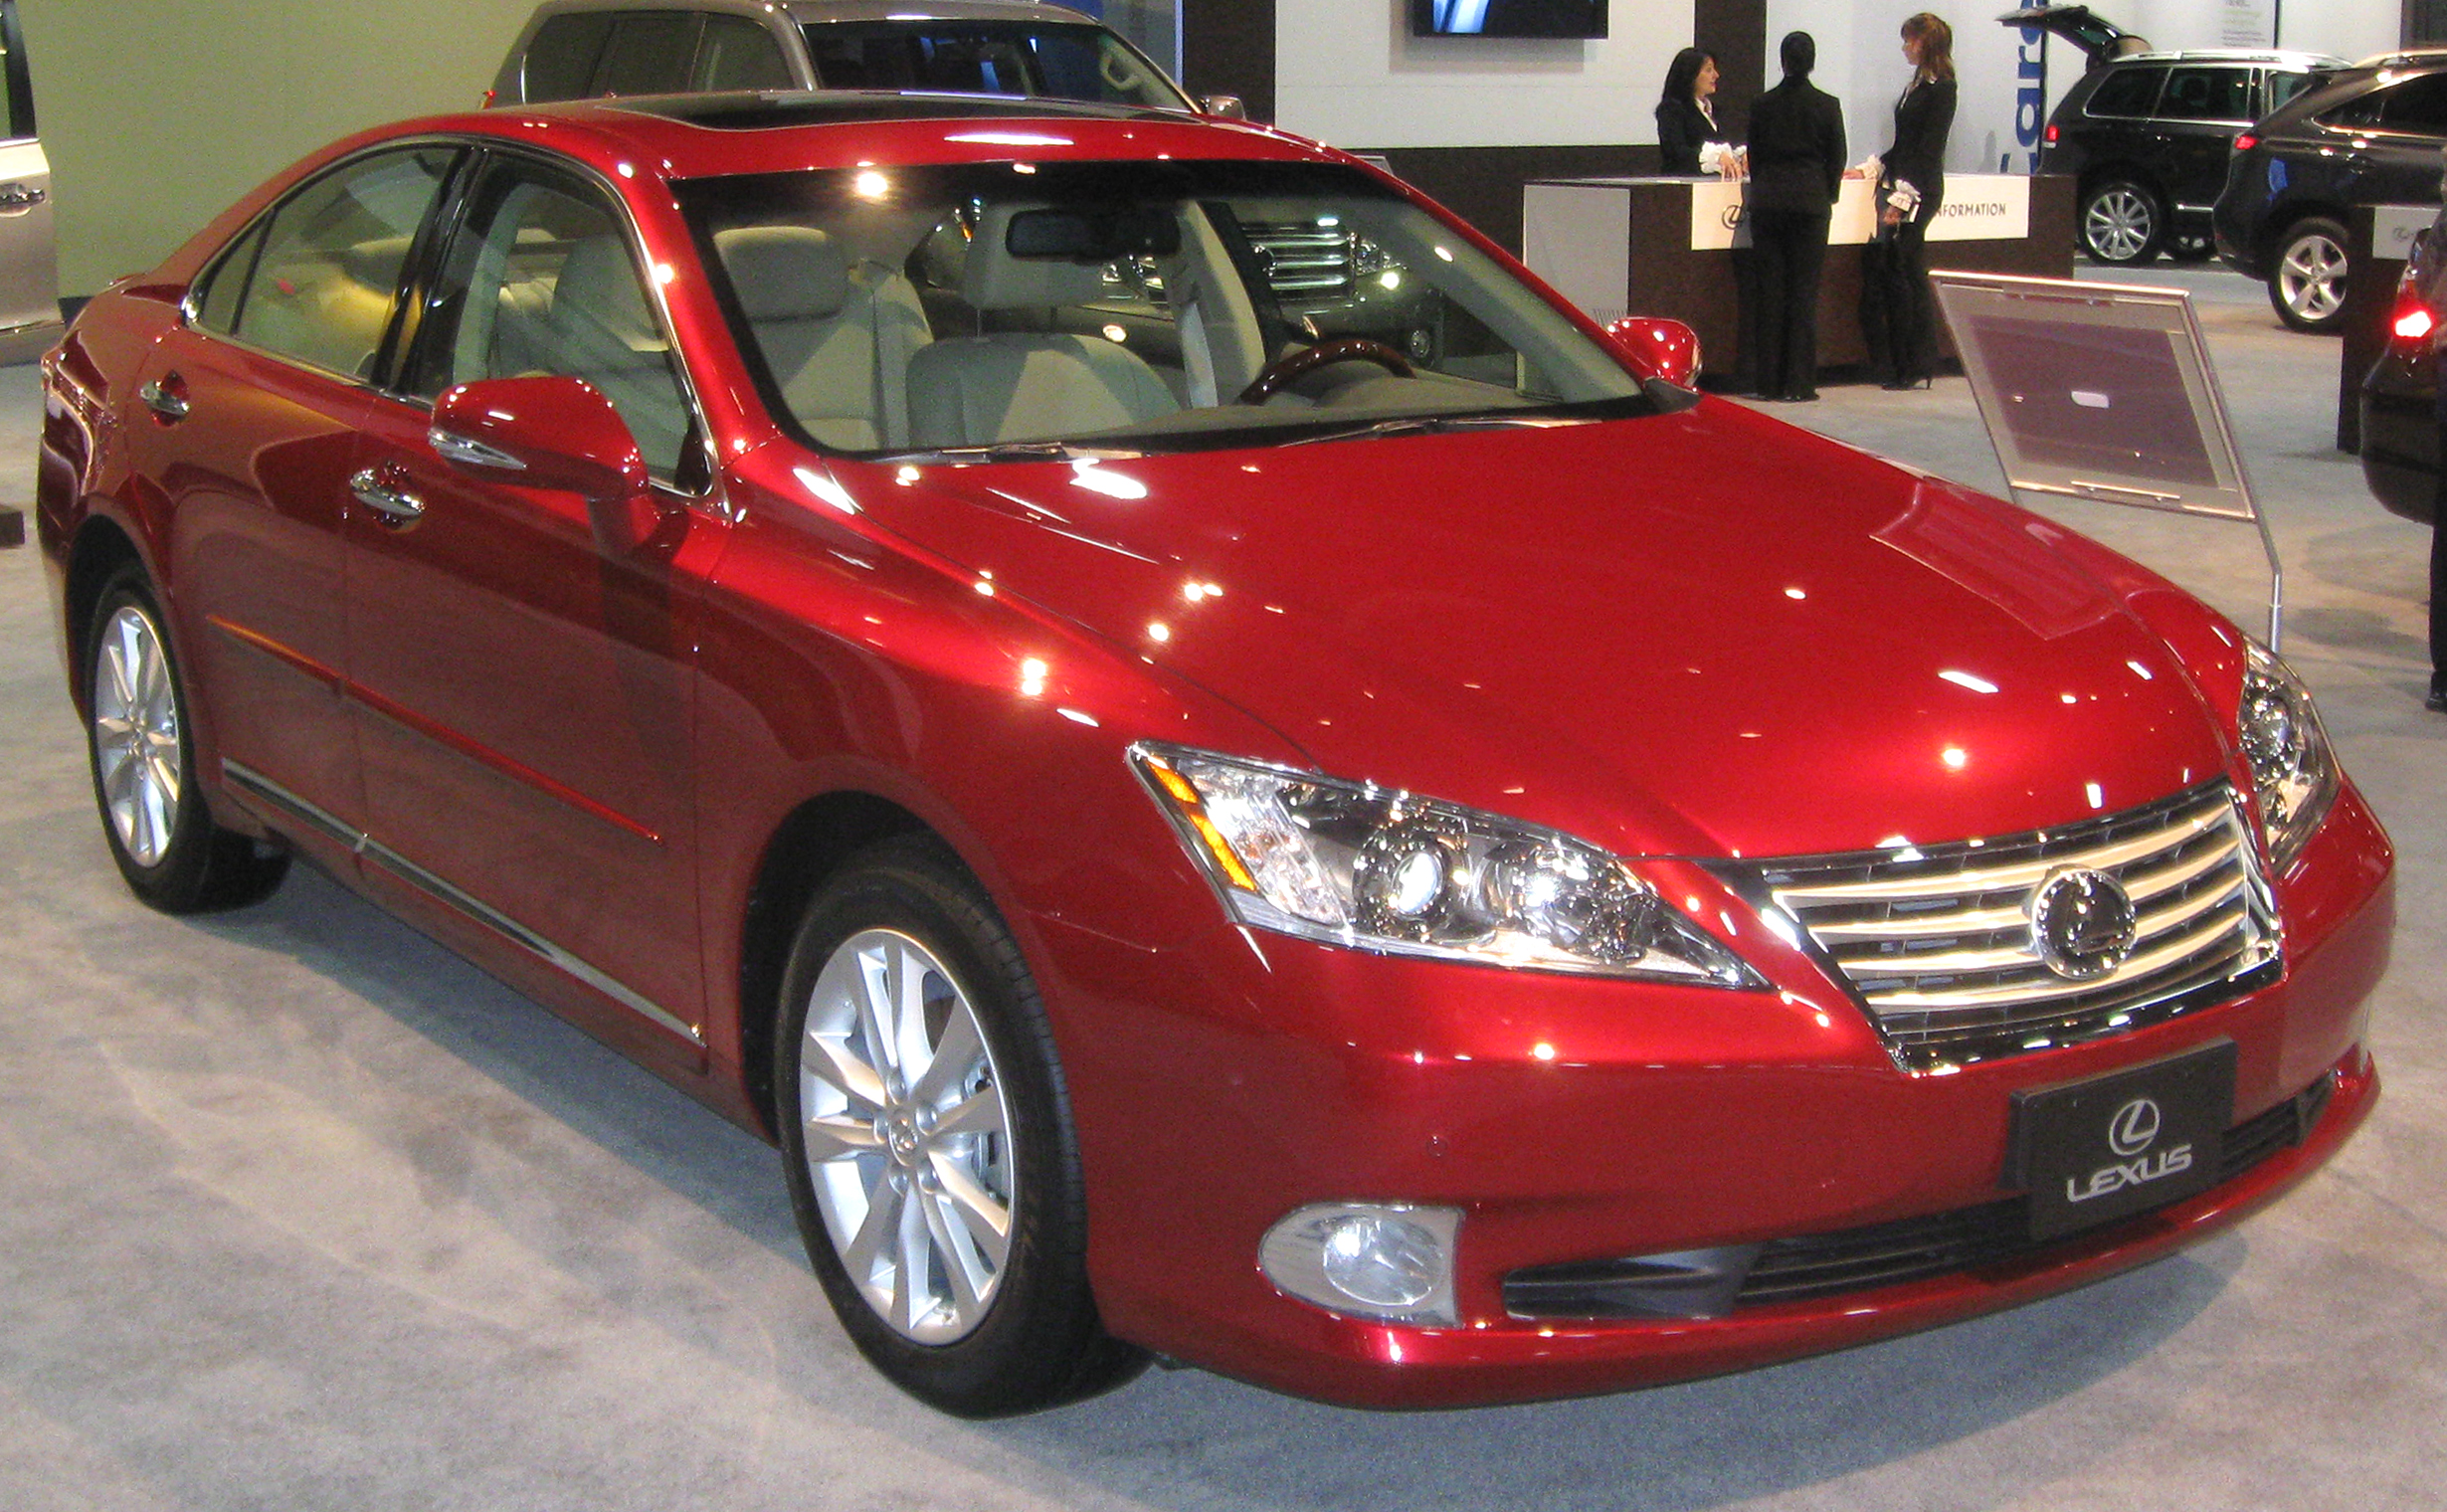 2010 lexus es 350 review edmunds autos post. Black Bedroom Furniture Sets. Home Design Ideas